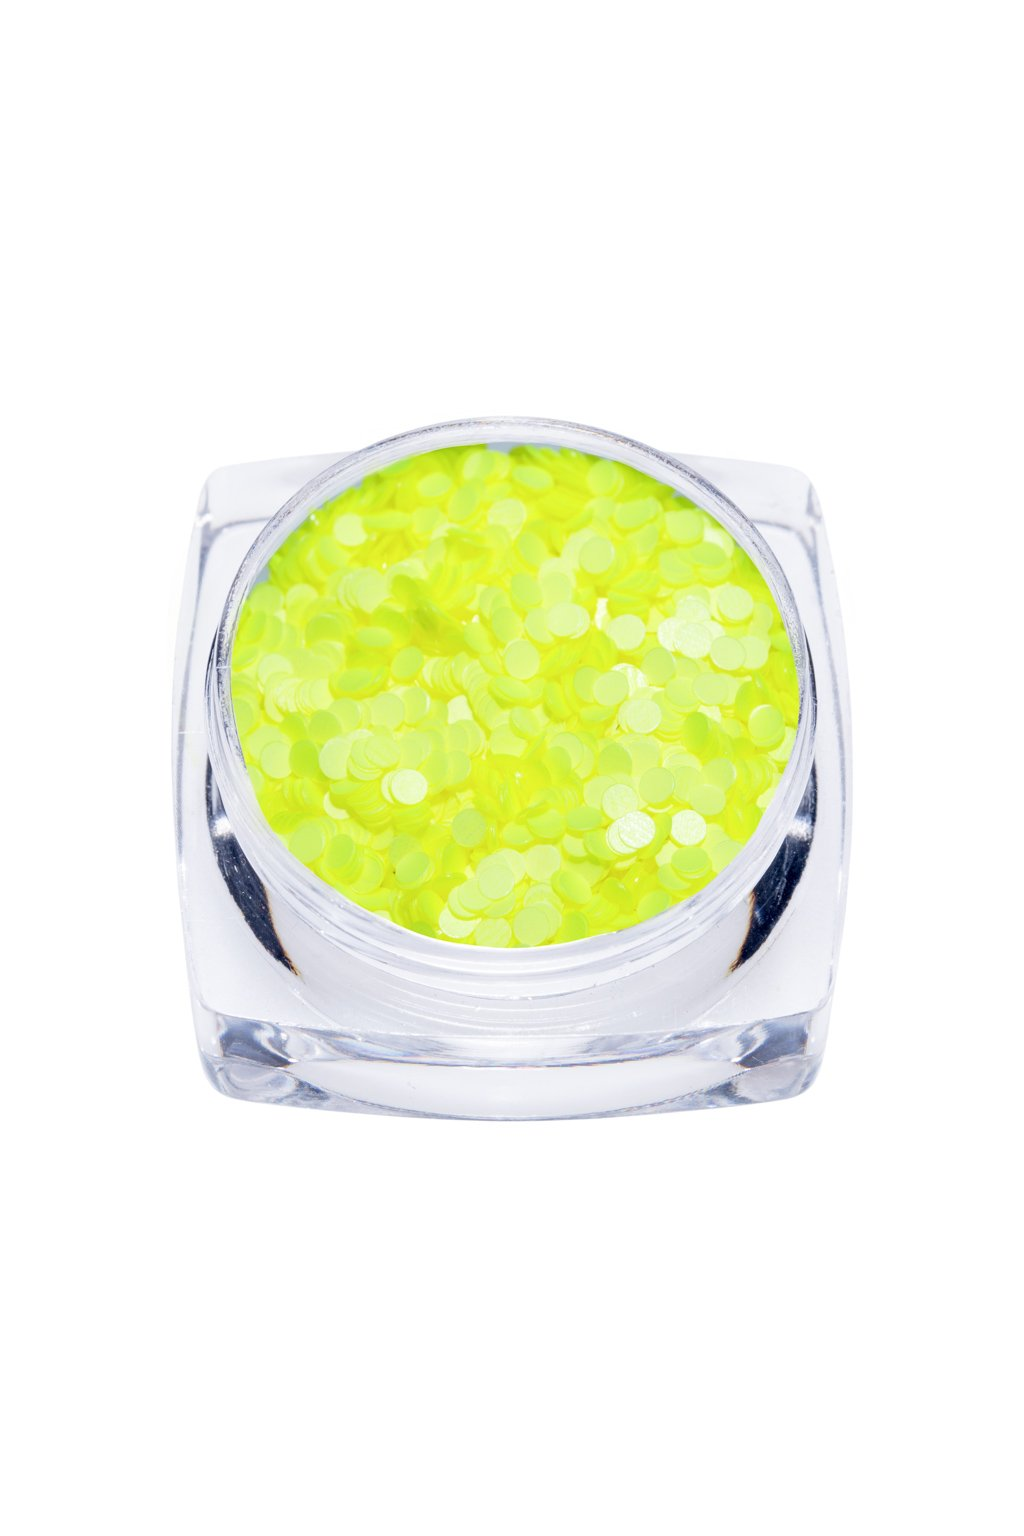 23987 minipihy neon yellow 1mm